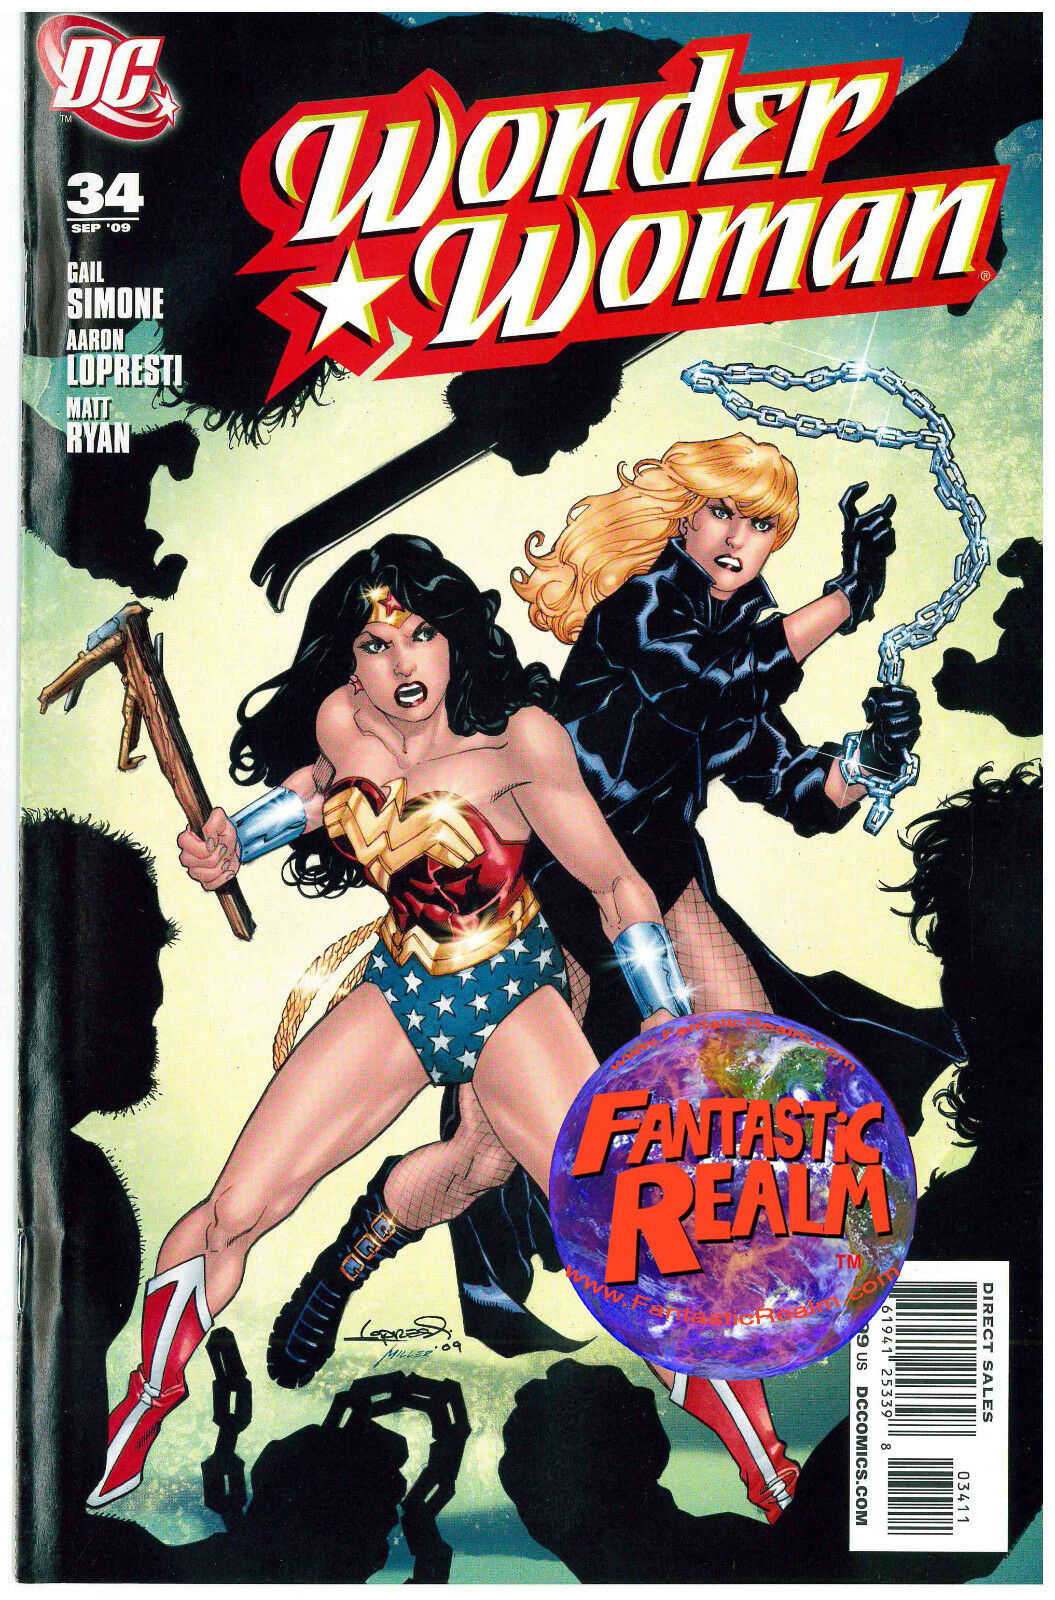 WONDER WOMAN #34 & 35 LOPRESTI BLACK CANARY DC COMICS